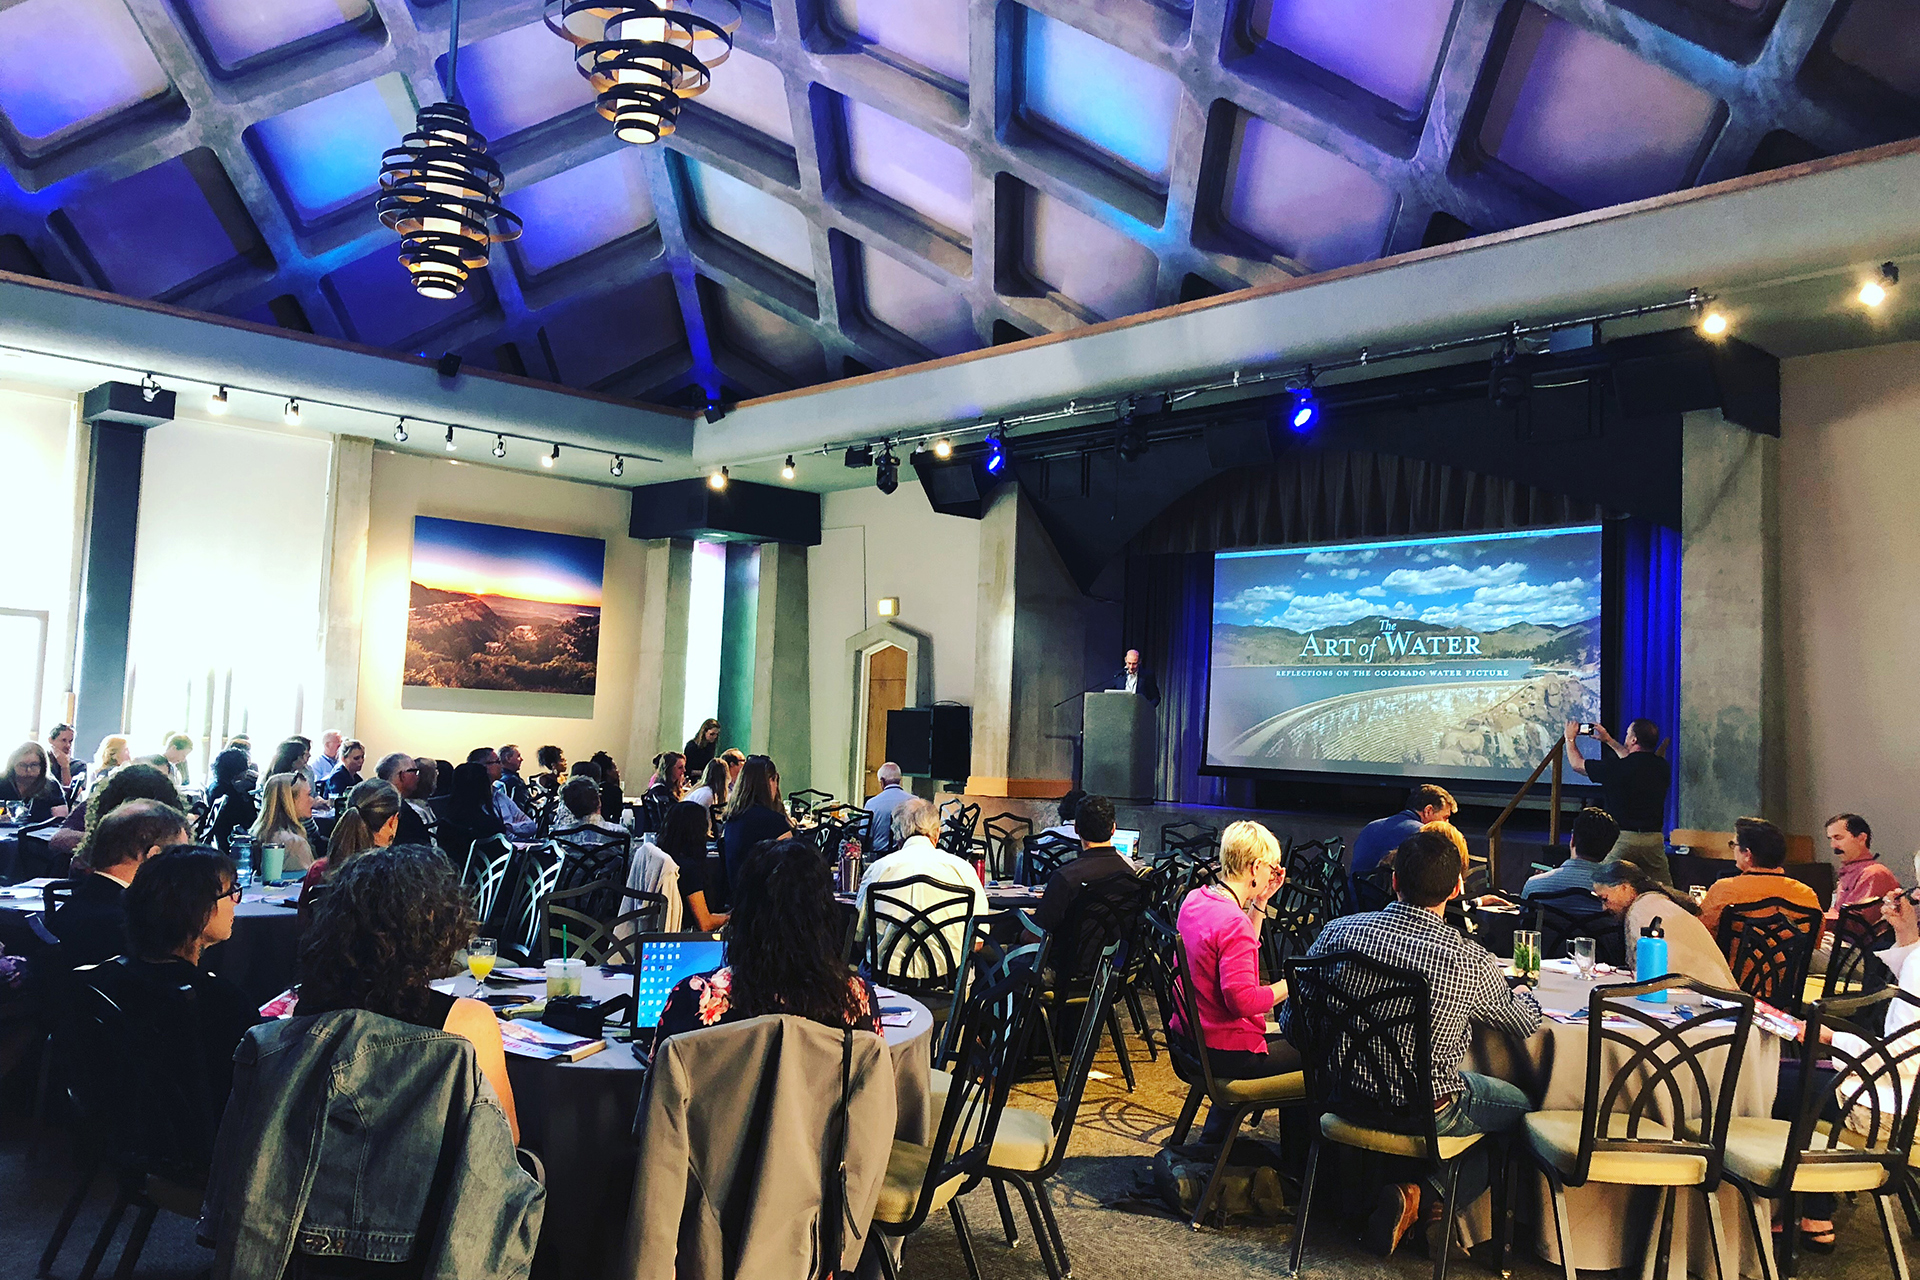 Wide shot of a conference with someone presenting